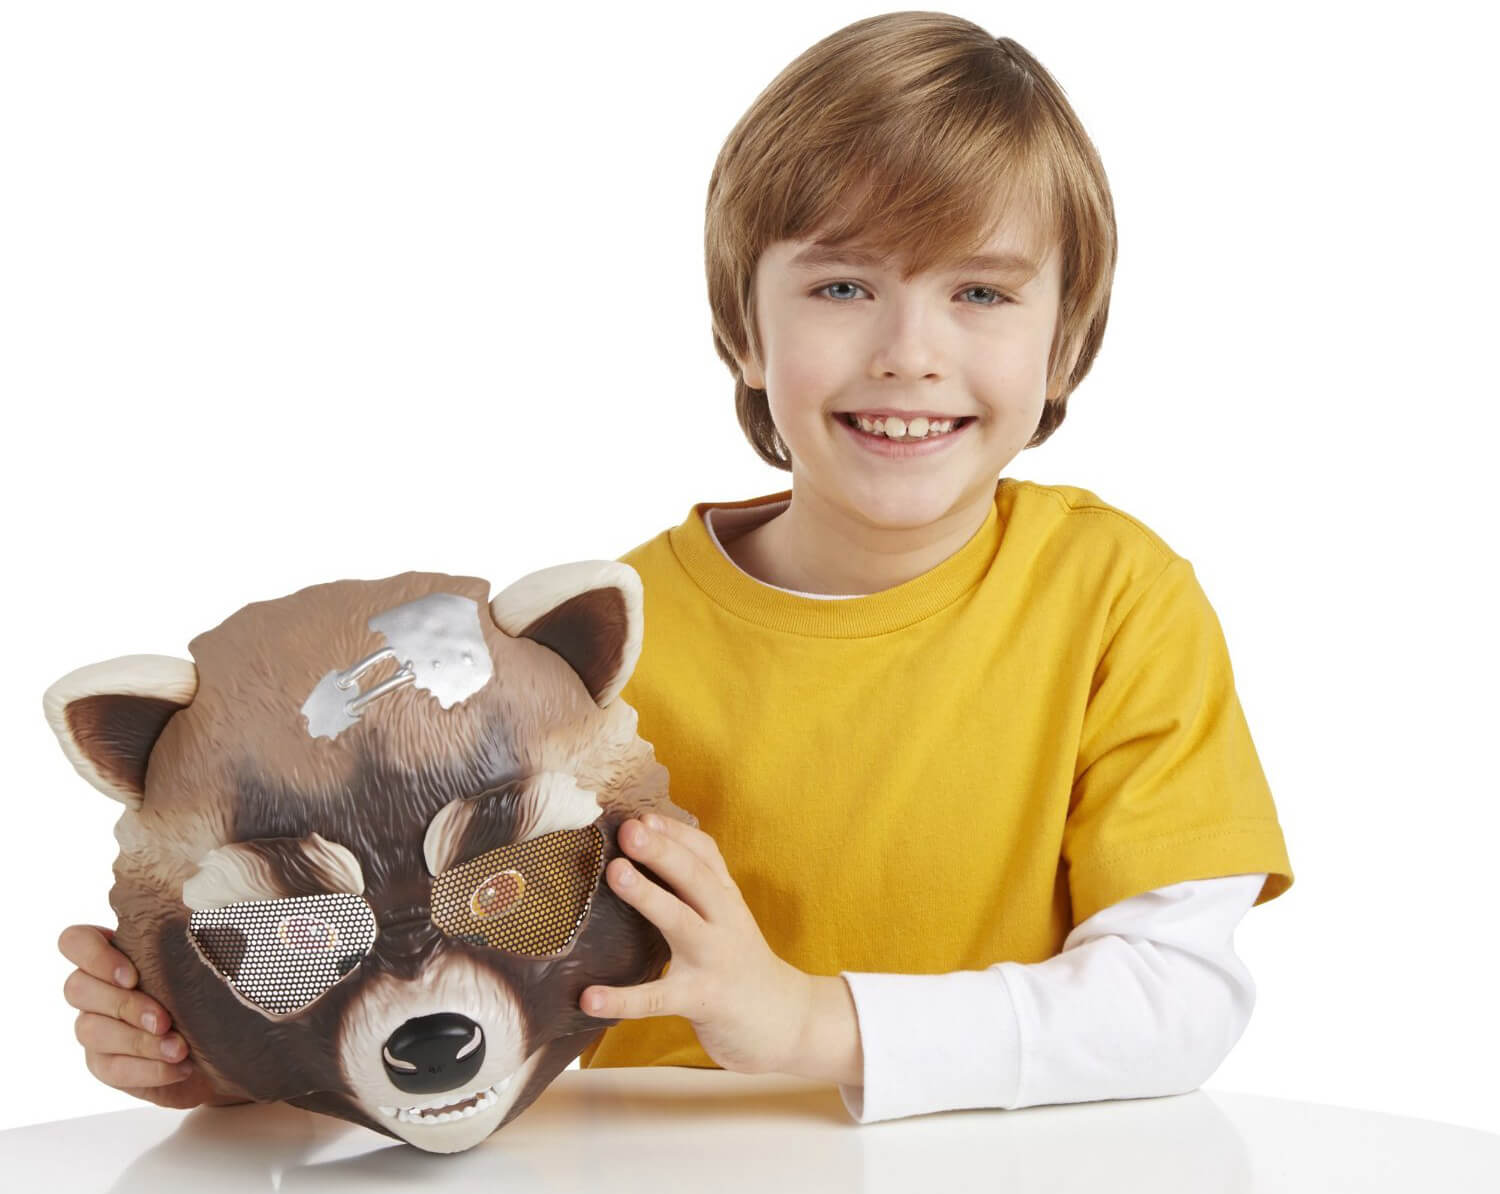 laser-time-rocket-racoon-mask-guardians-of-the-galaxy-kids-amazon